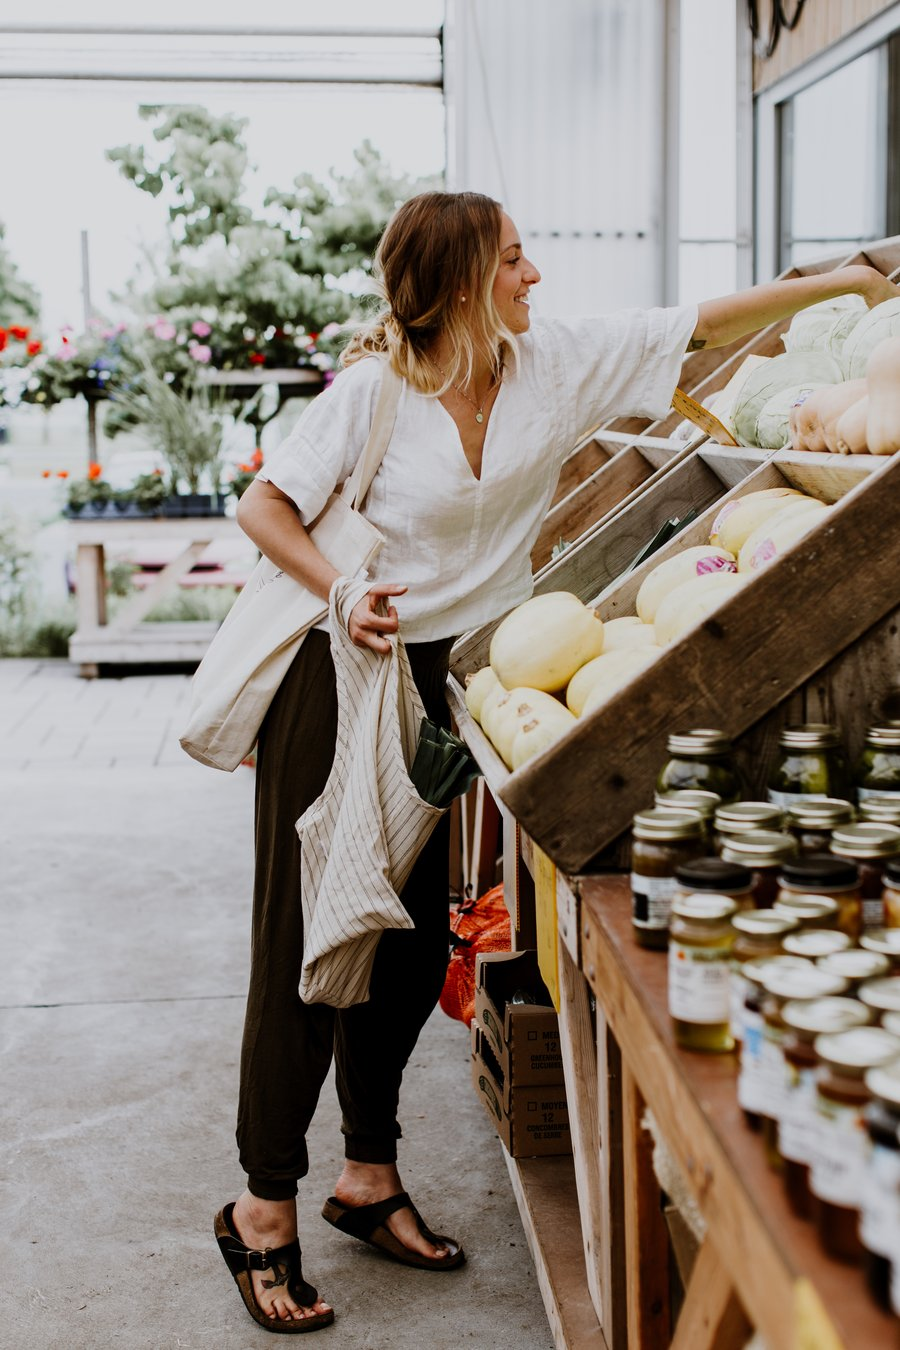 Woman doing shopping with textile bag